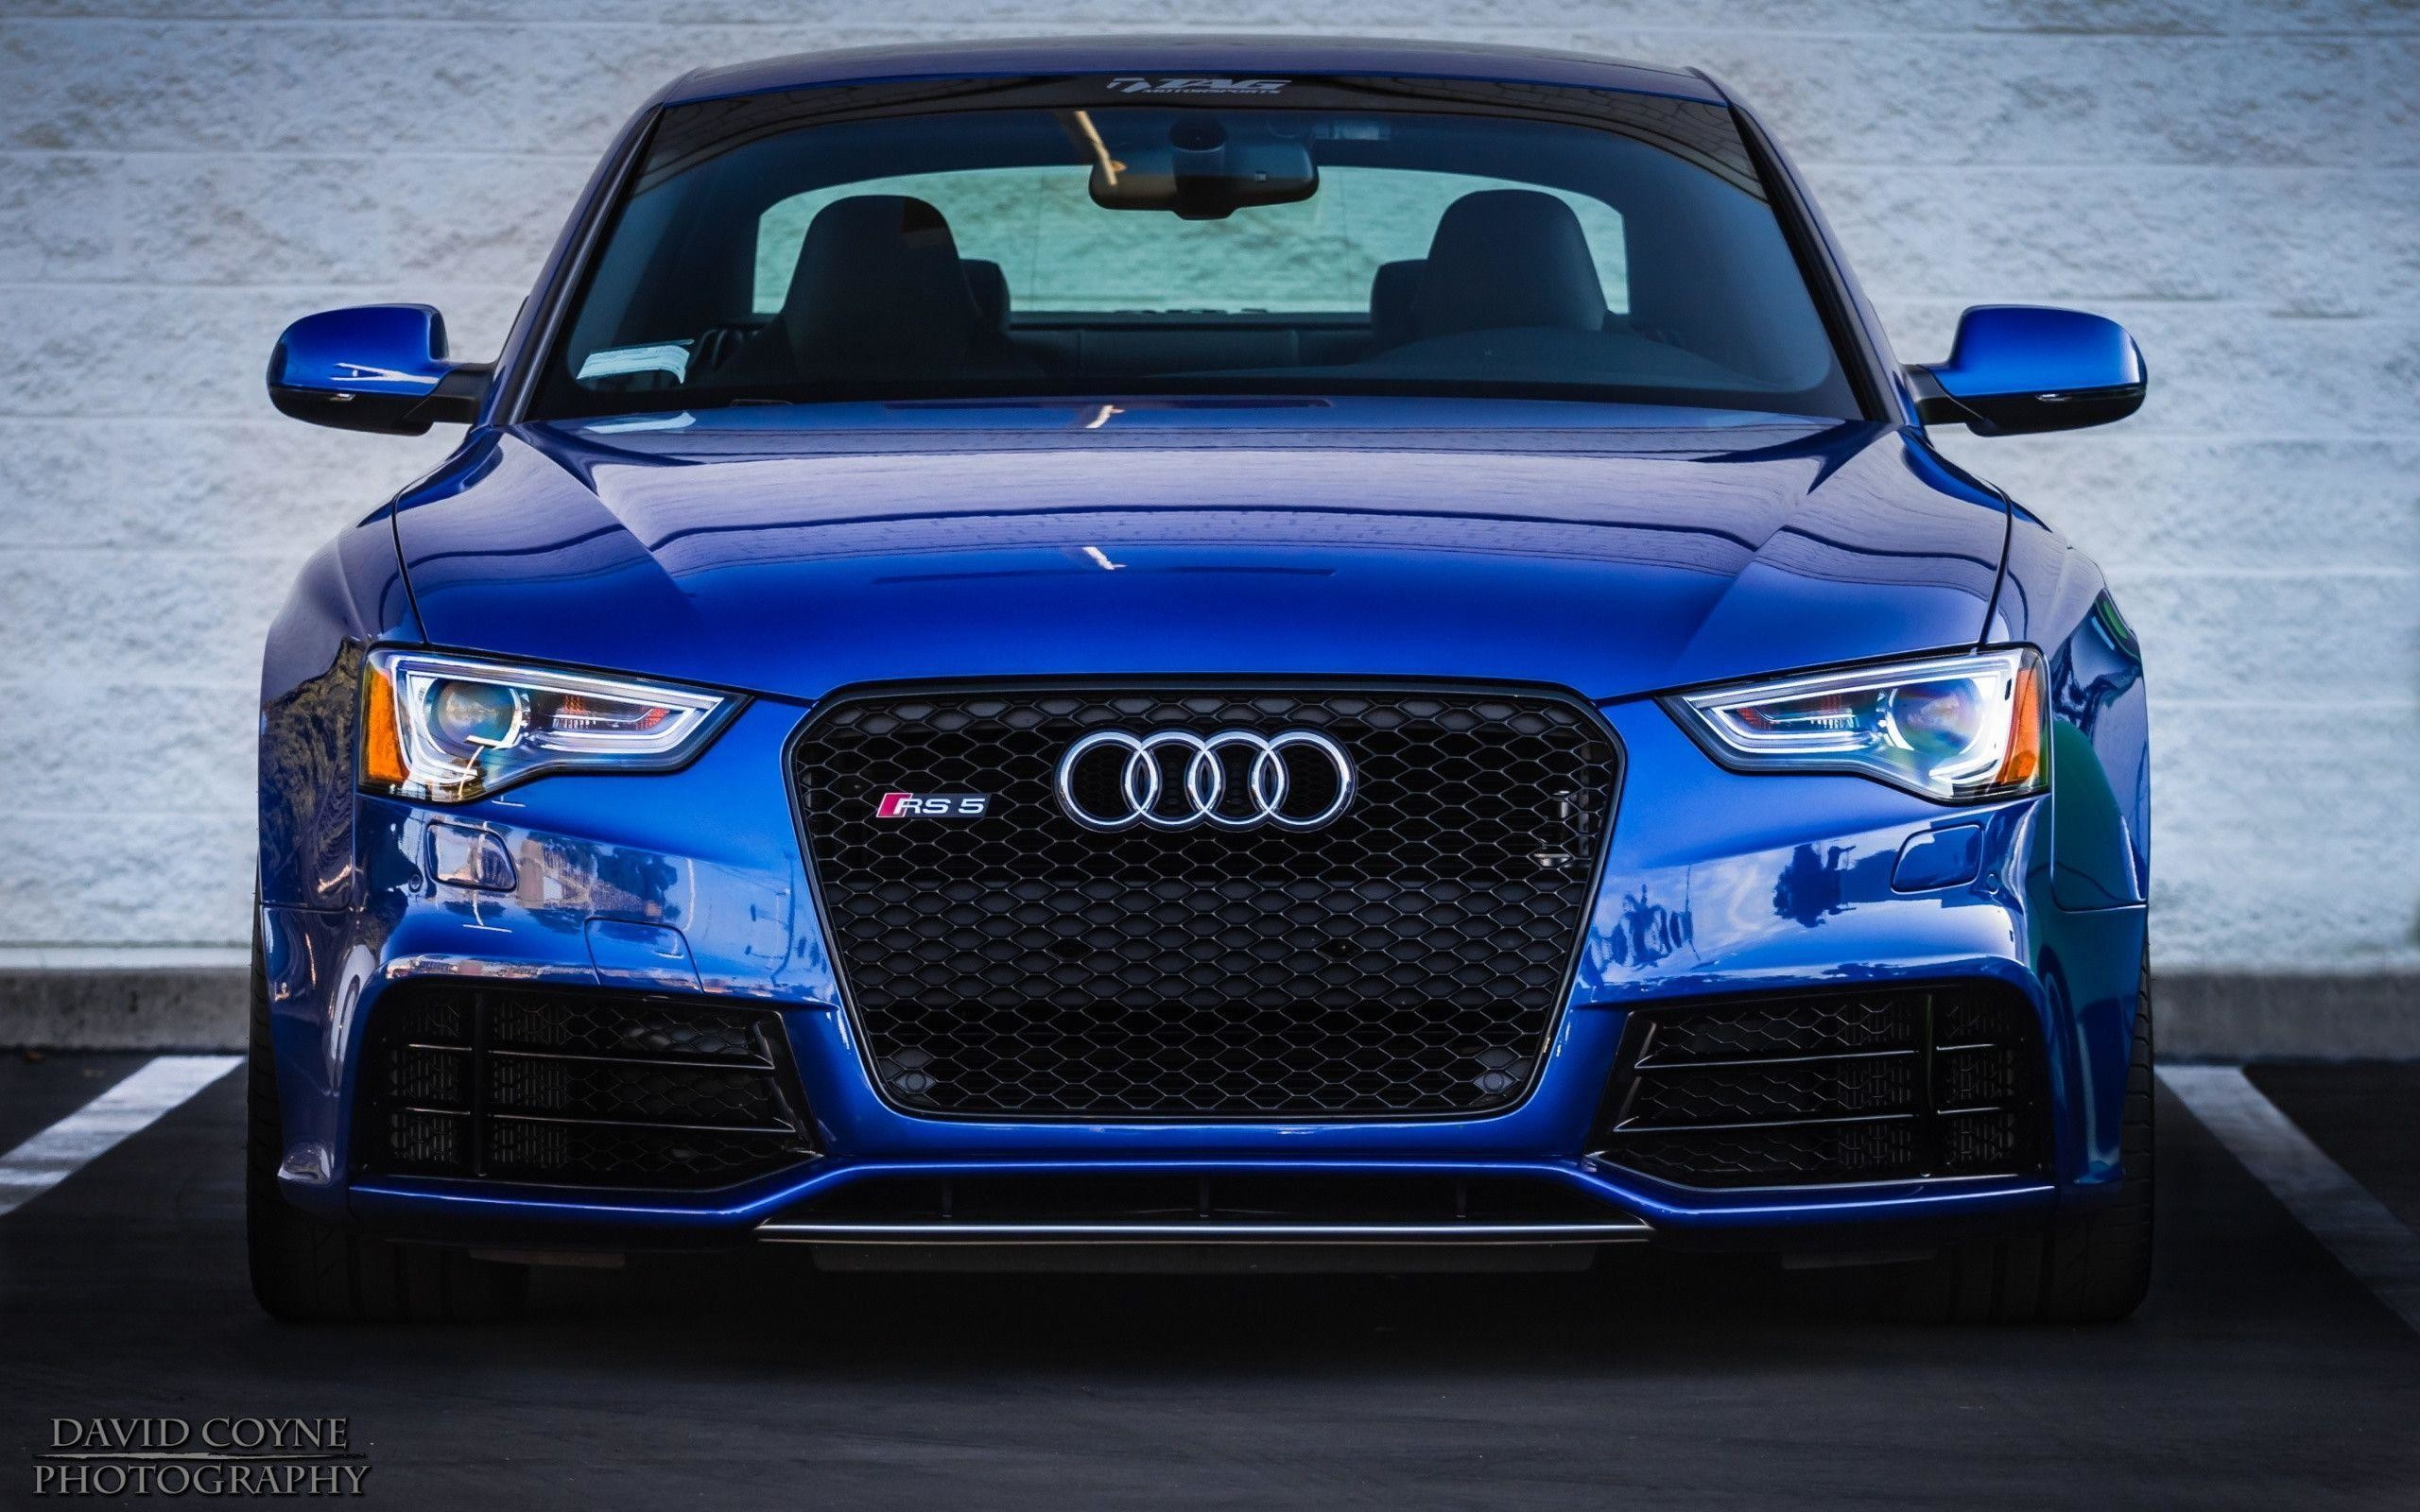 Audi Full Wallpapers Wallpapers All Superior Audi Full Wallpapers Backgrounds Wallpapersplanet Net